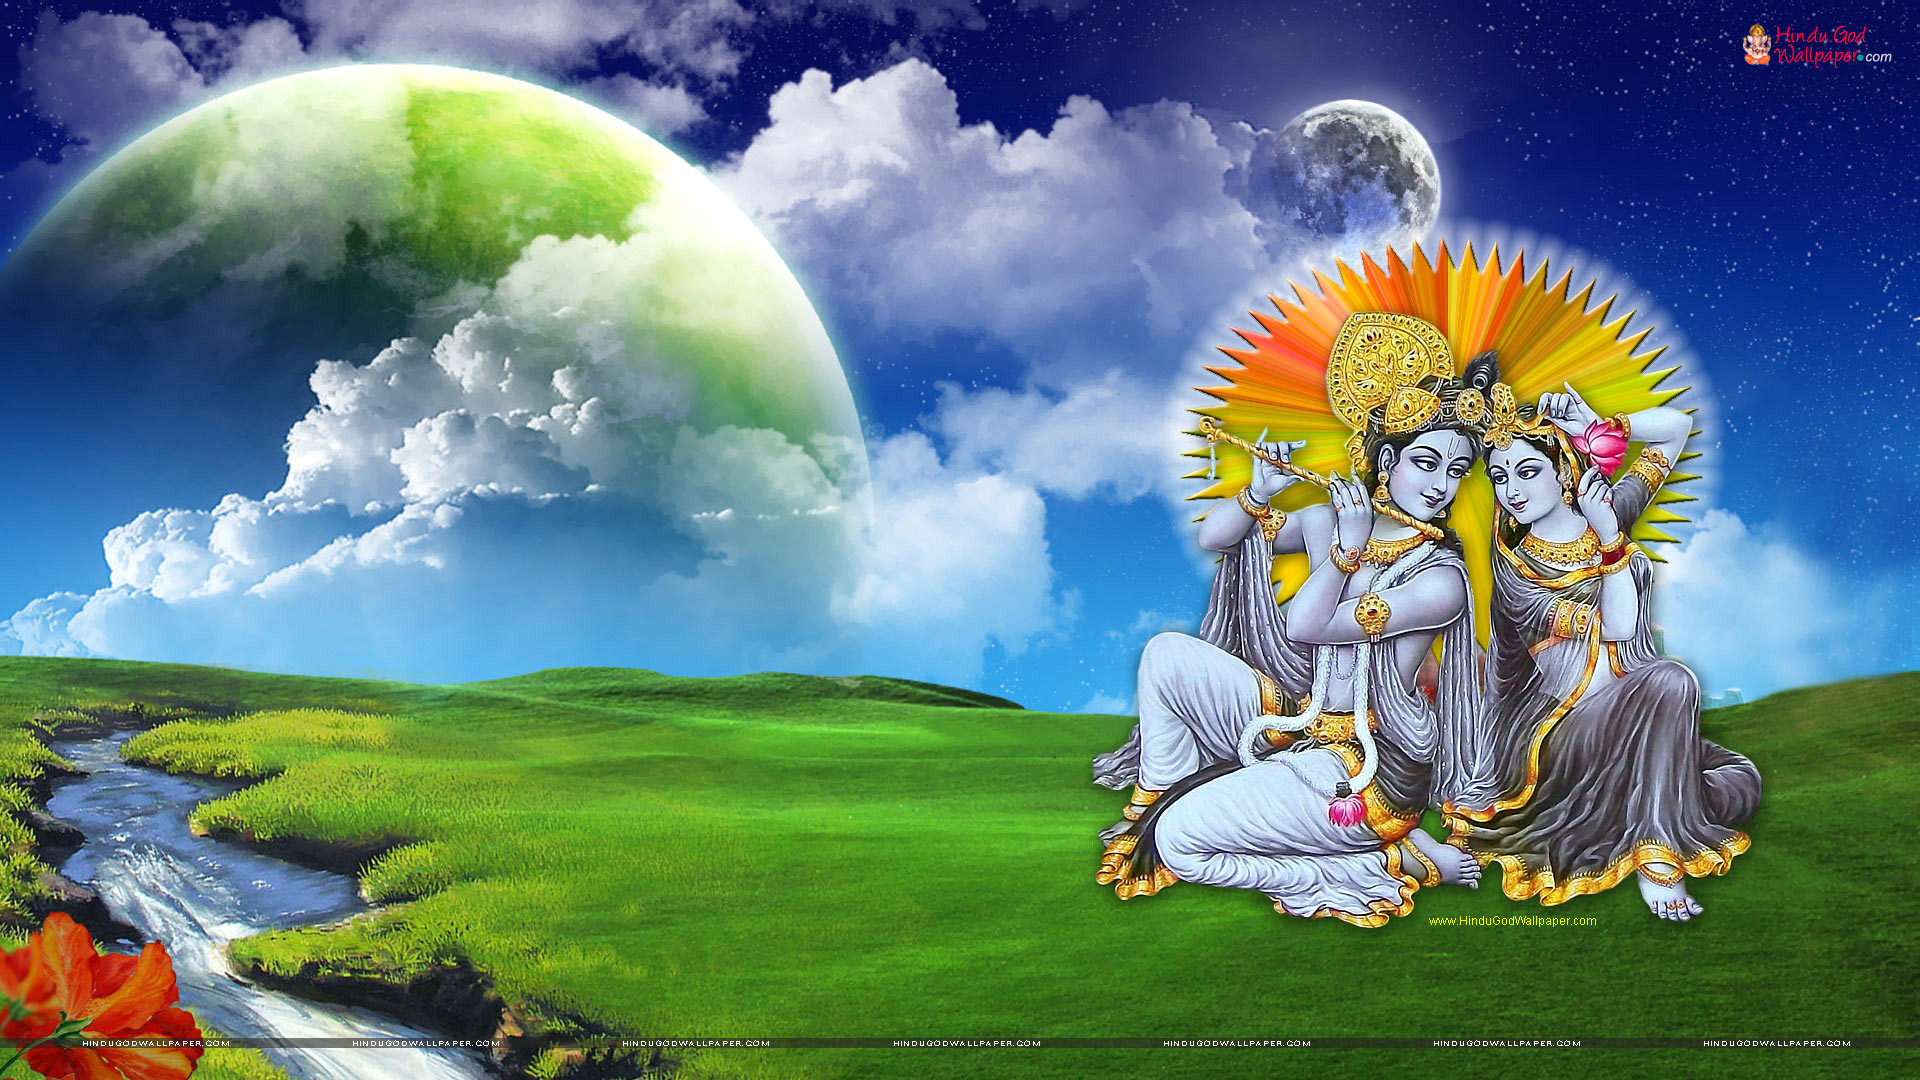 50 Love Wallpaper Hd Full Size For Mobile And Laptop: Radha Krishna HD Wallpapers (68+ Images